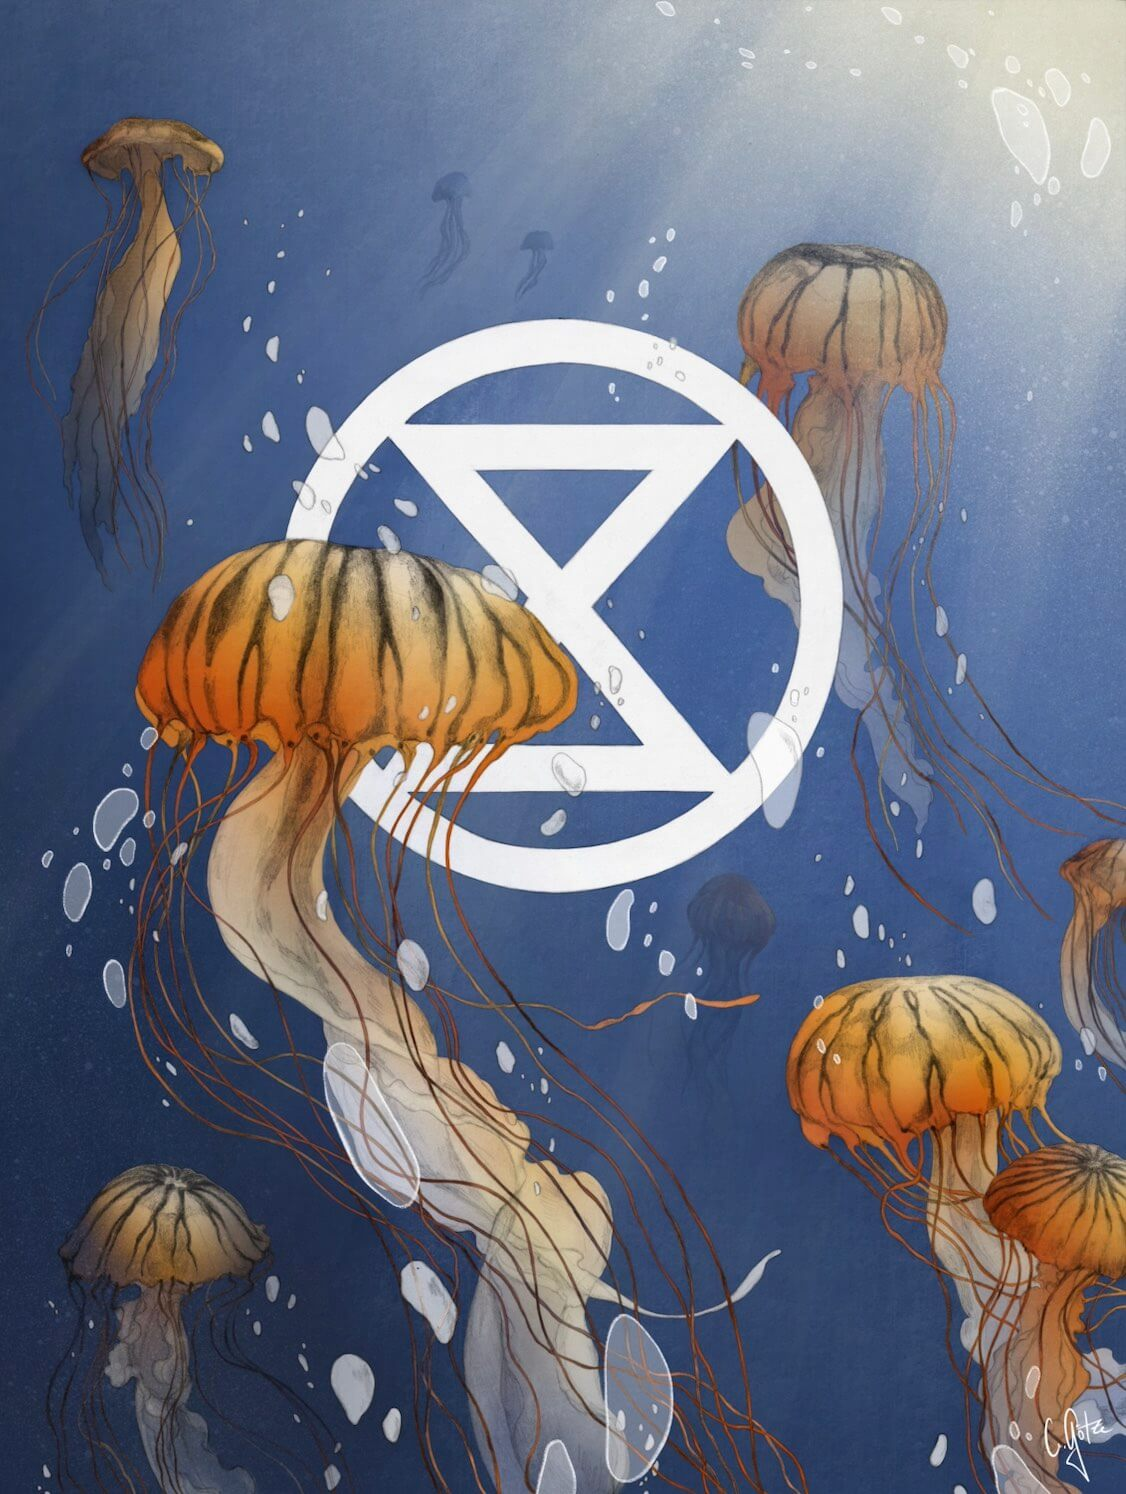 XR Symbol with jellyfish